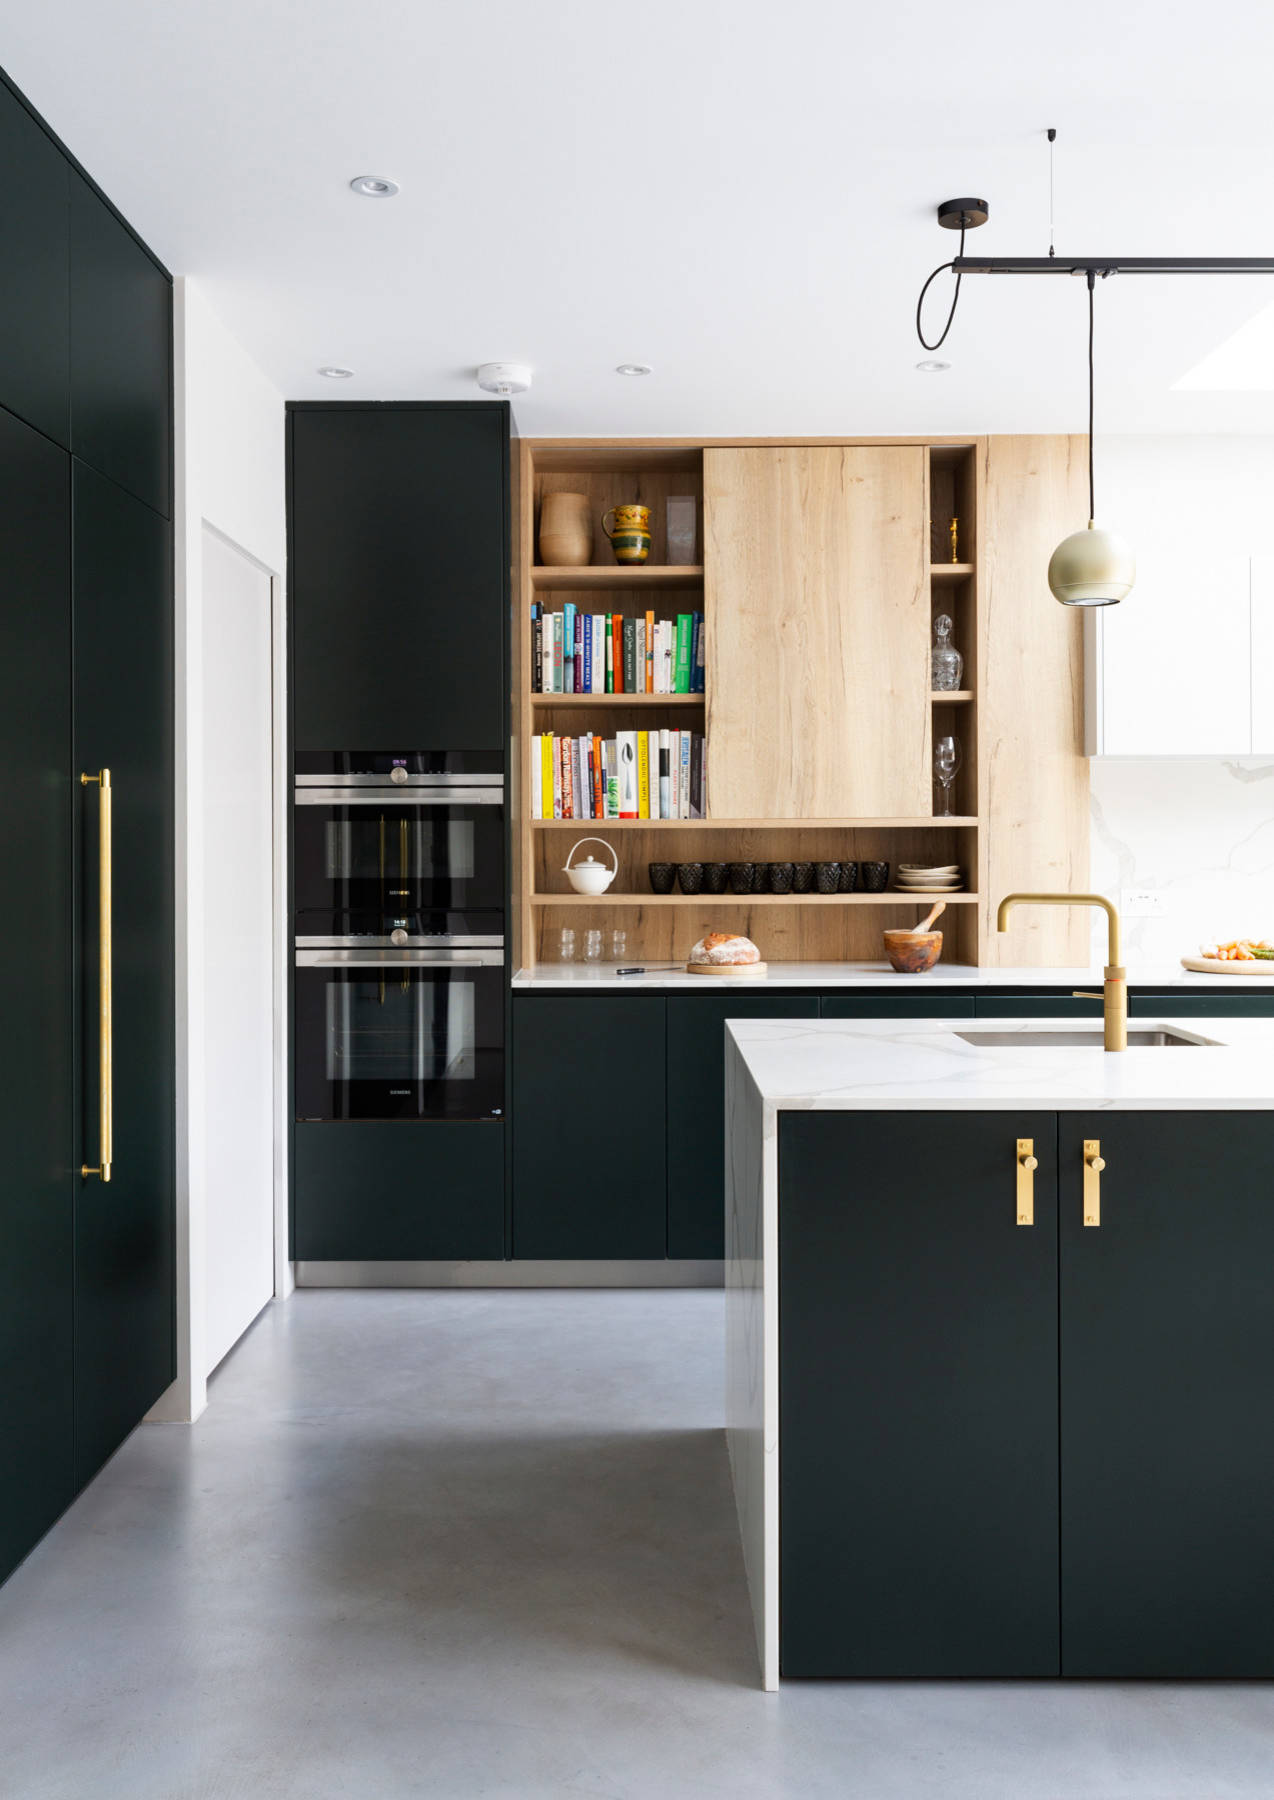 75 Beautiful Kitchen With Green Cabinets And Marble Countertops Pictures Ideas December 2020 Houzz